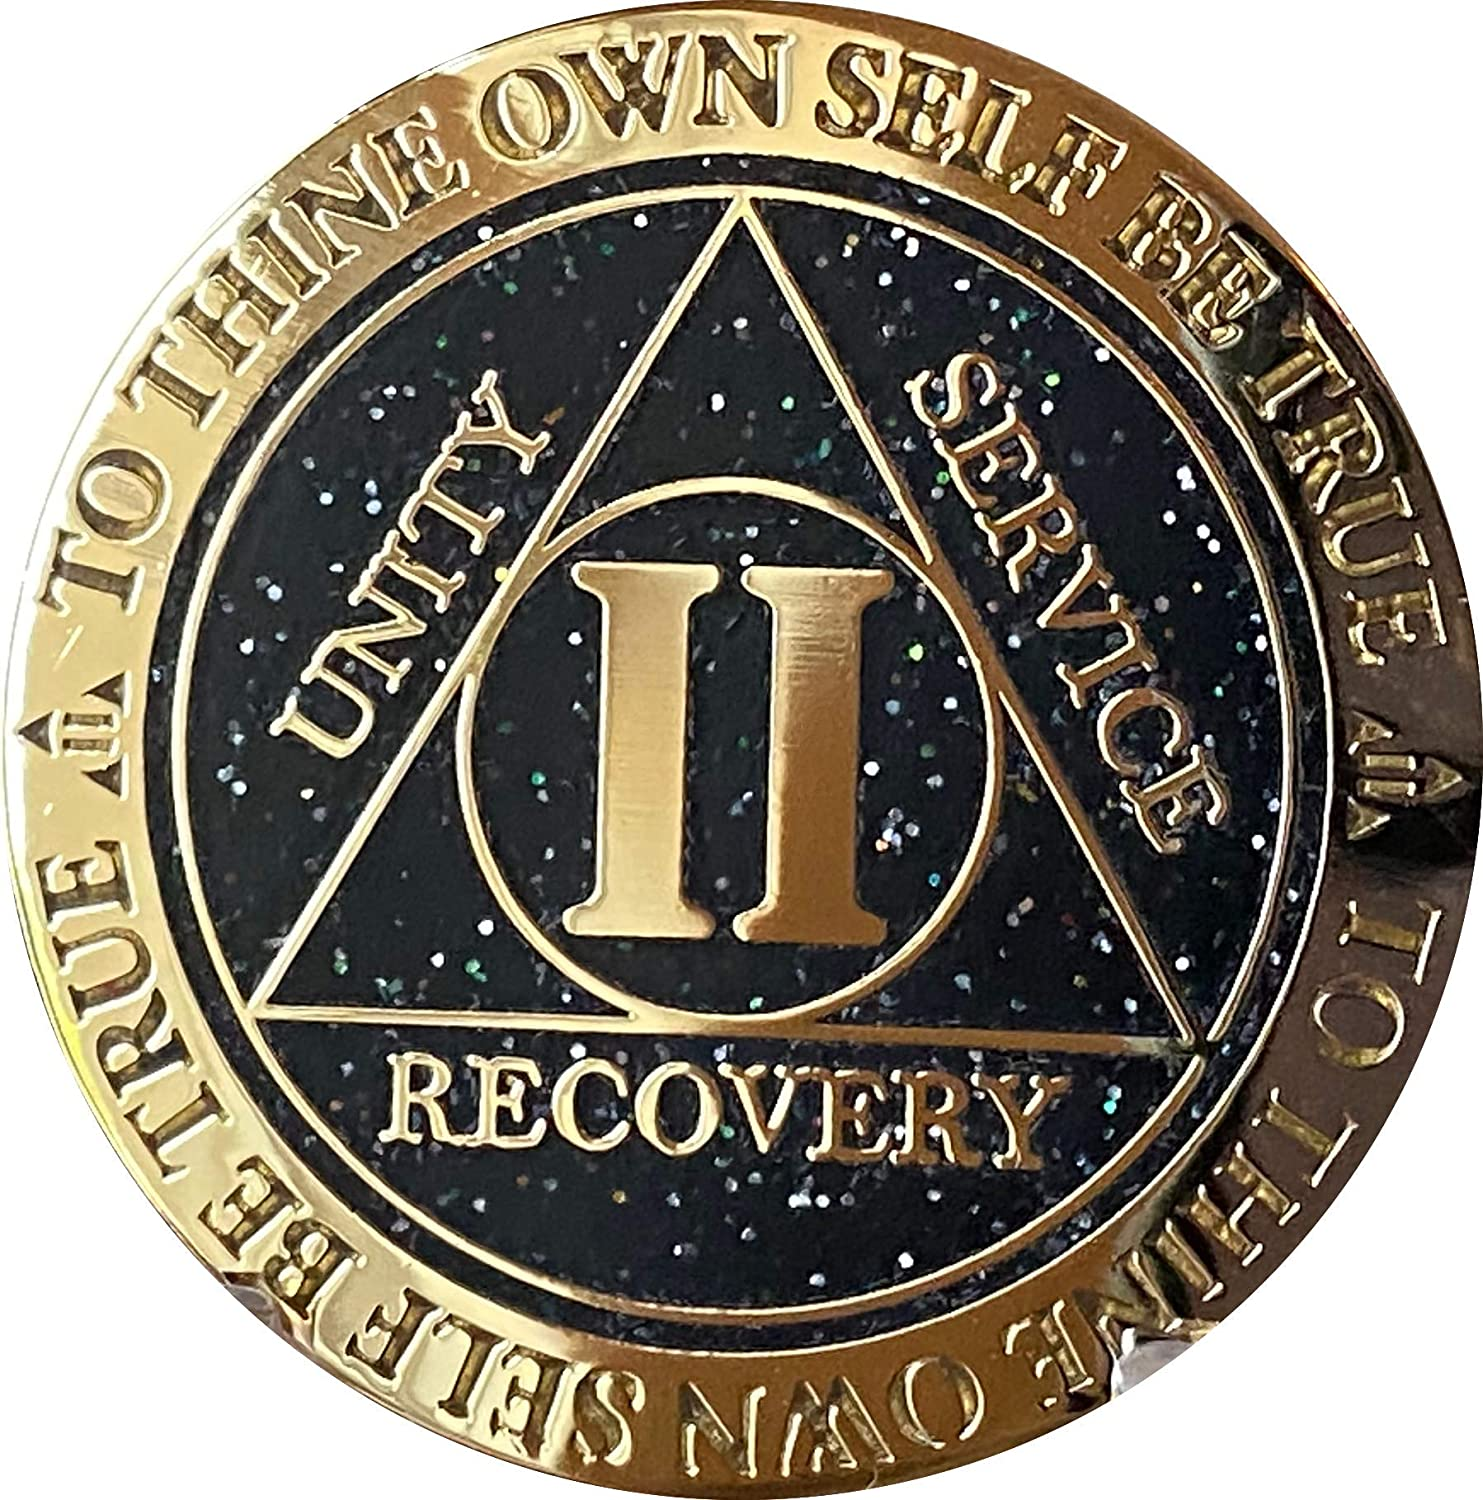 2 4 years warranty Year AA Medallion Reflex Black Glitter Chip Plated Color Special price for a limited time Gold